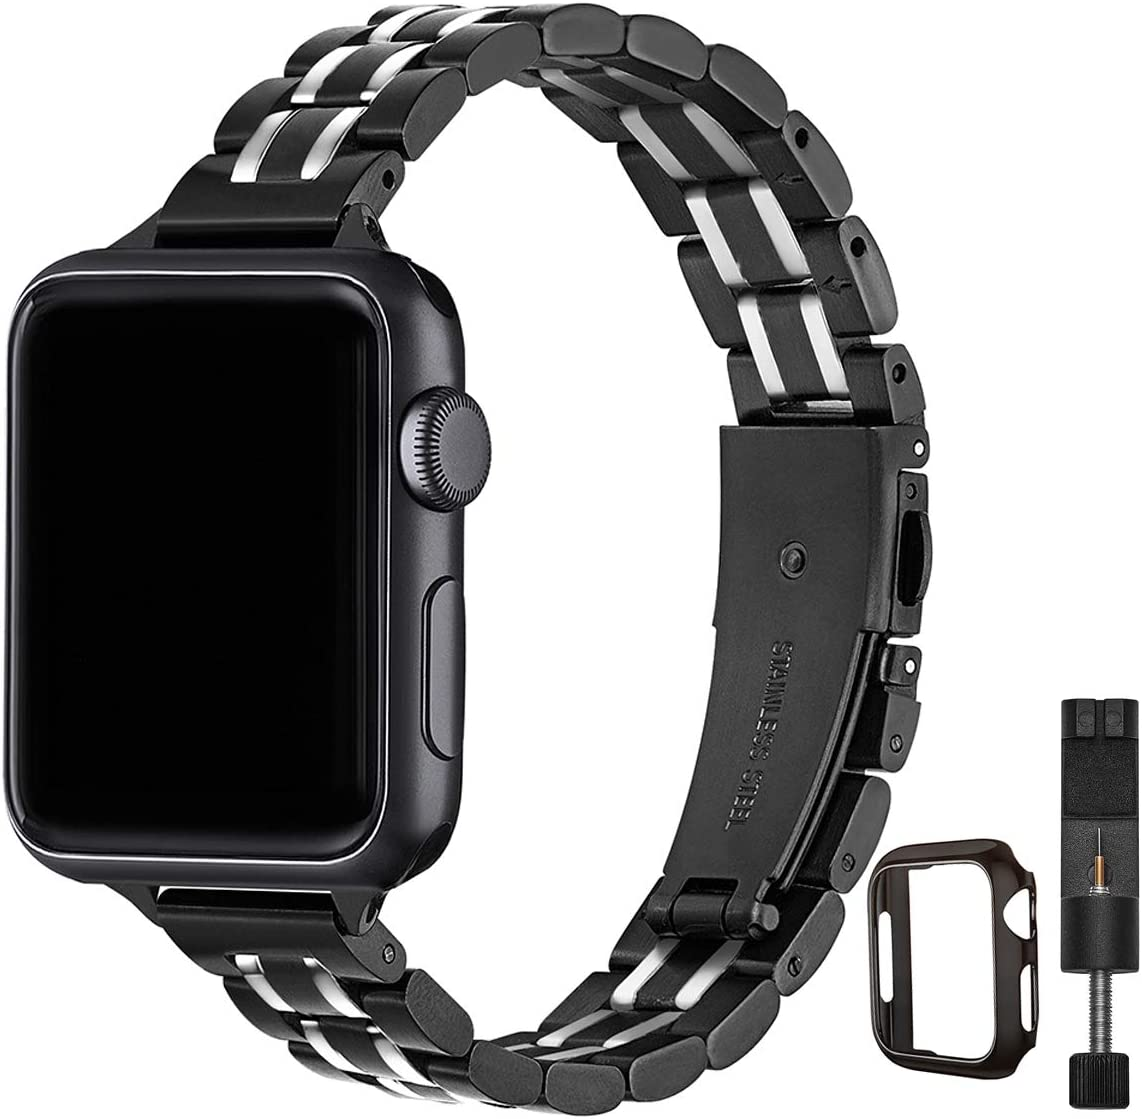 STIROLL Thin Replacement Band Compatible for Apple Watch 38mm 40mm 42mm 44mm, Stainless Steel Metal Wristband Women Men for iWatch SE Series 6/5/4/3/2/1 (Black+Silver, 42mm/44mm)